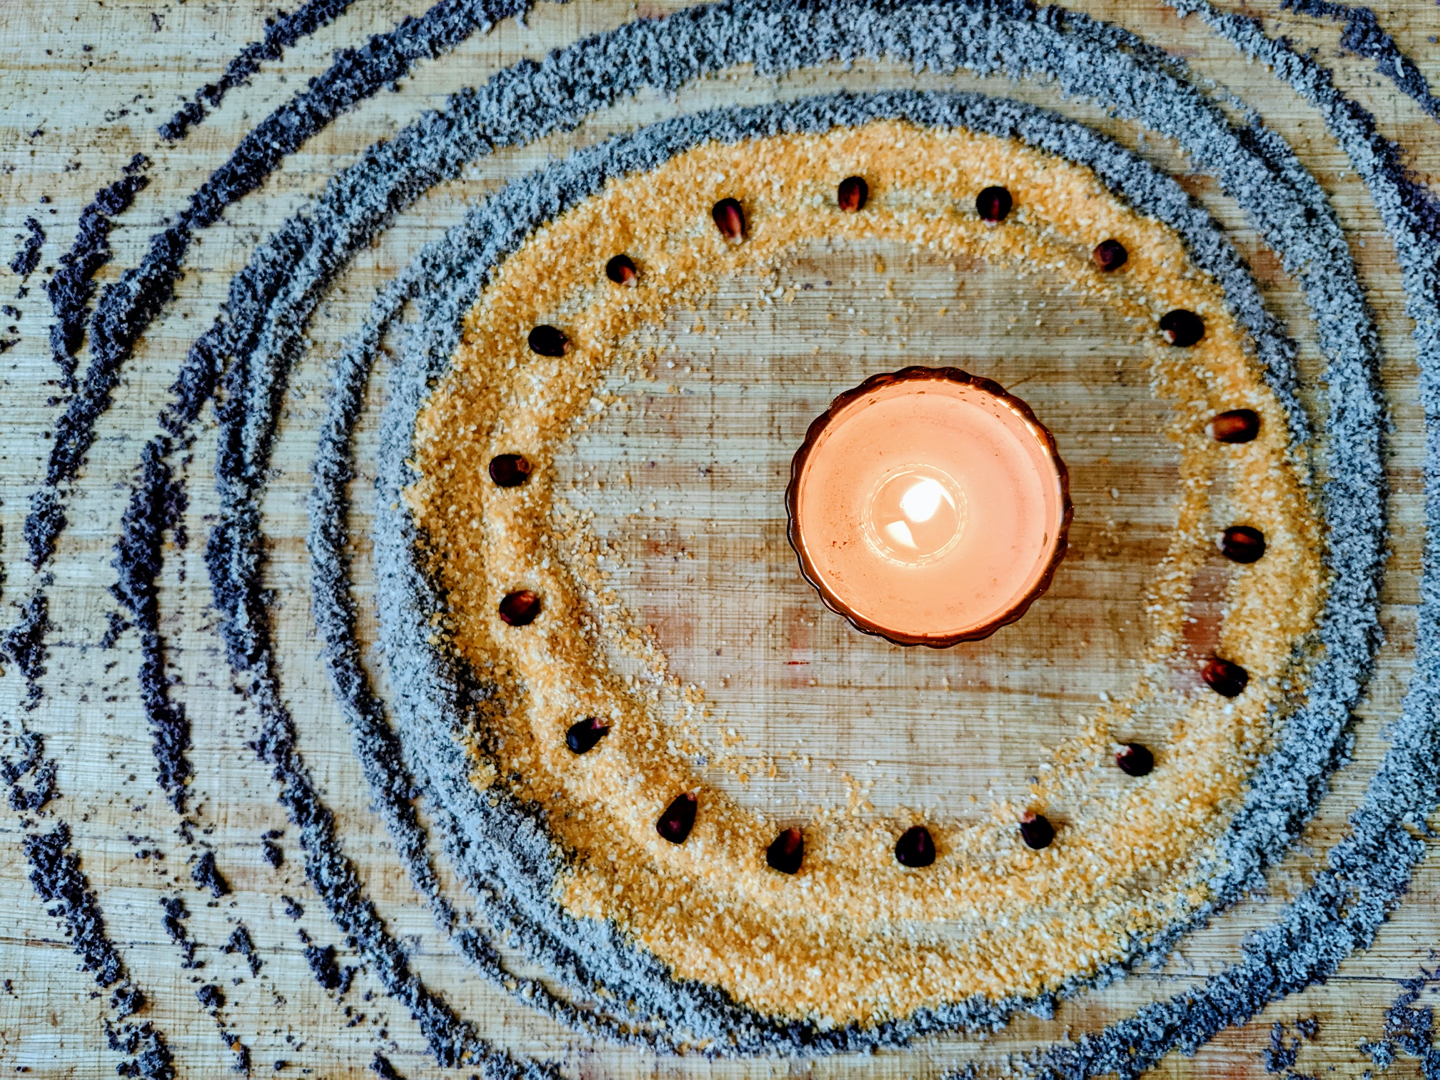 Photo of altar with a candle, blue cornmeal and red corn